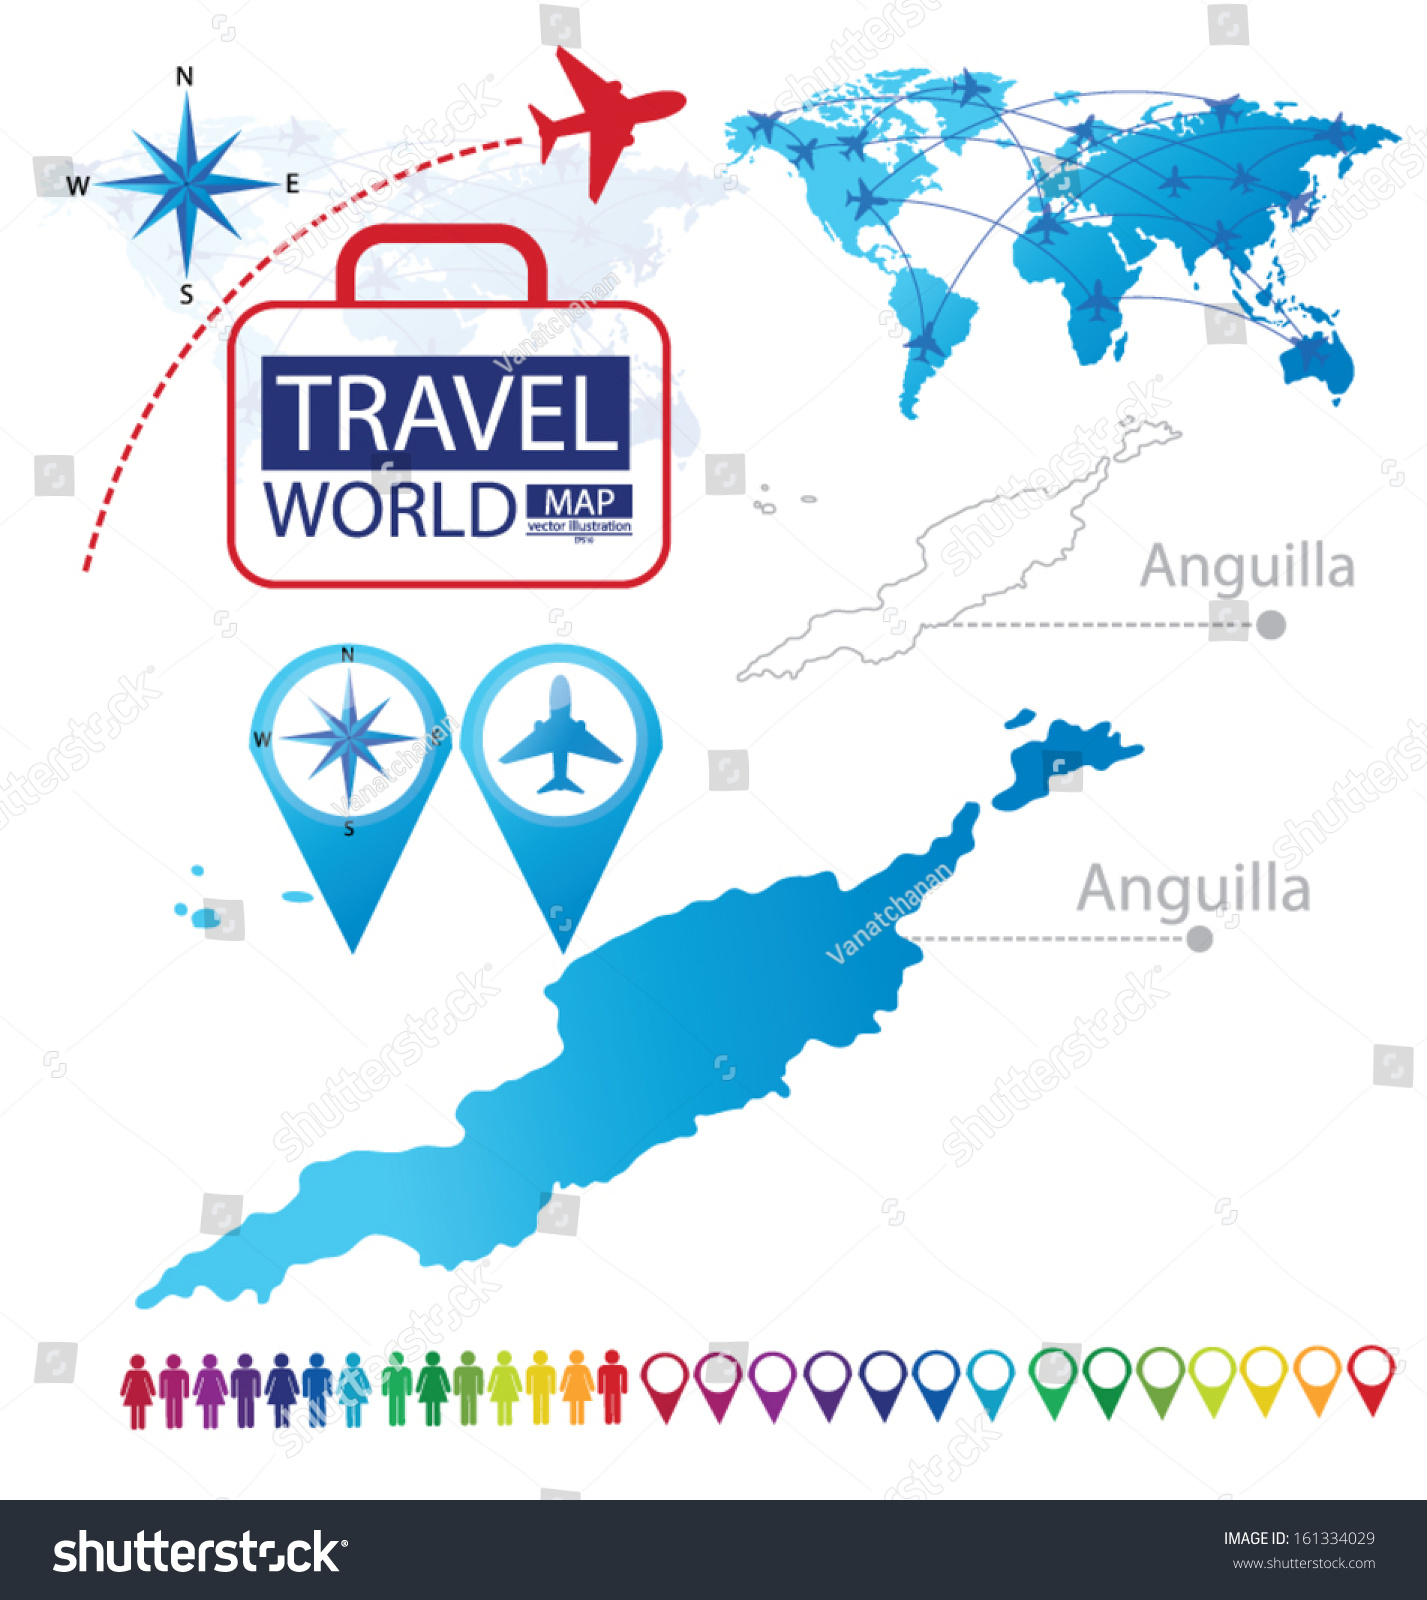 Anguilla World Map Travel Vector Illustration Stock Vector